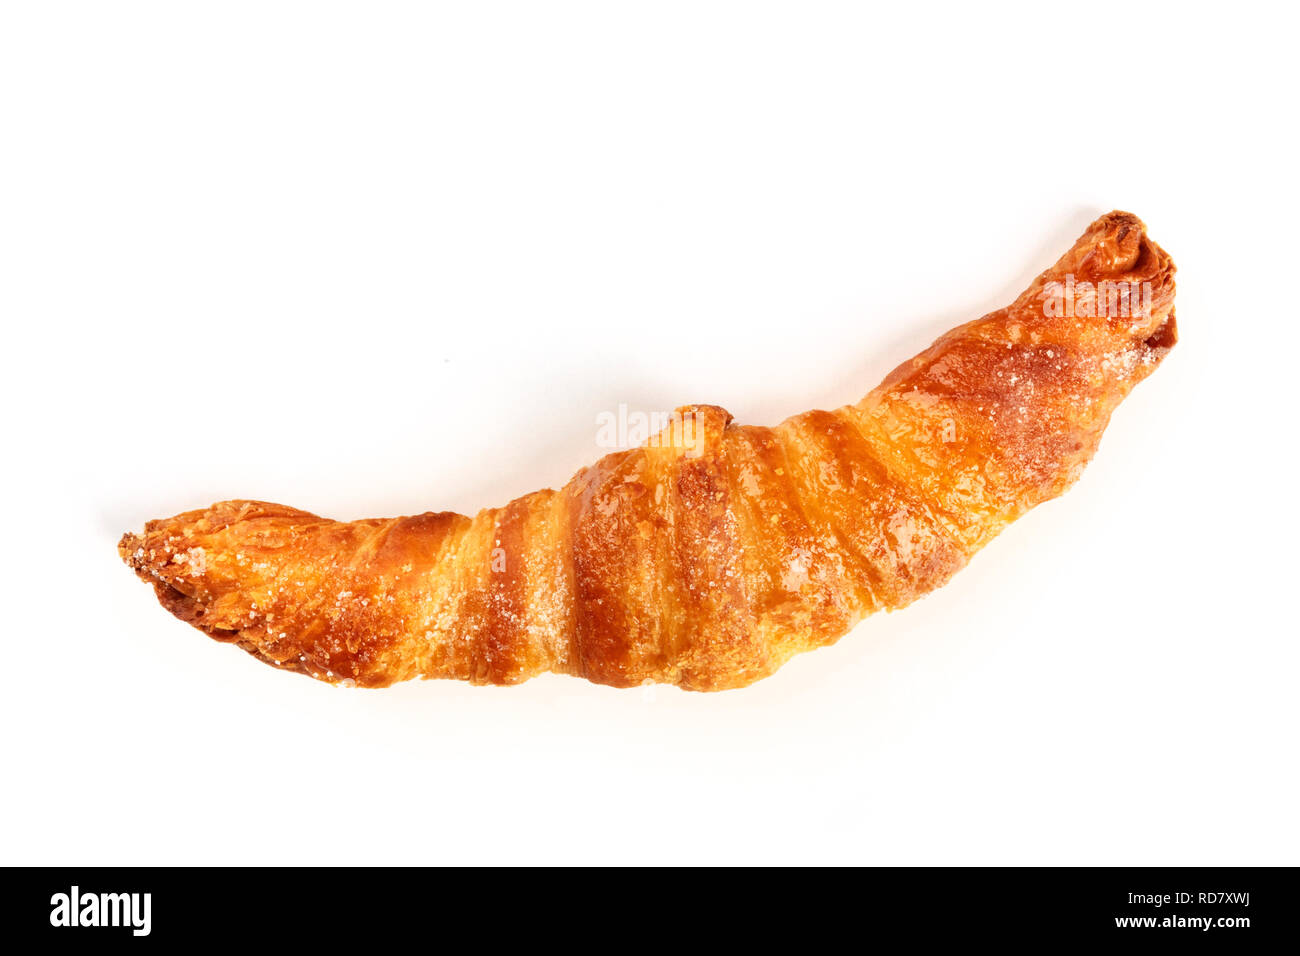 A croissant, shot from above on a white background with copy space - Stock Image